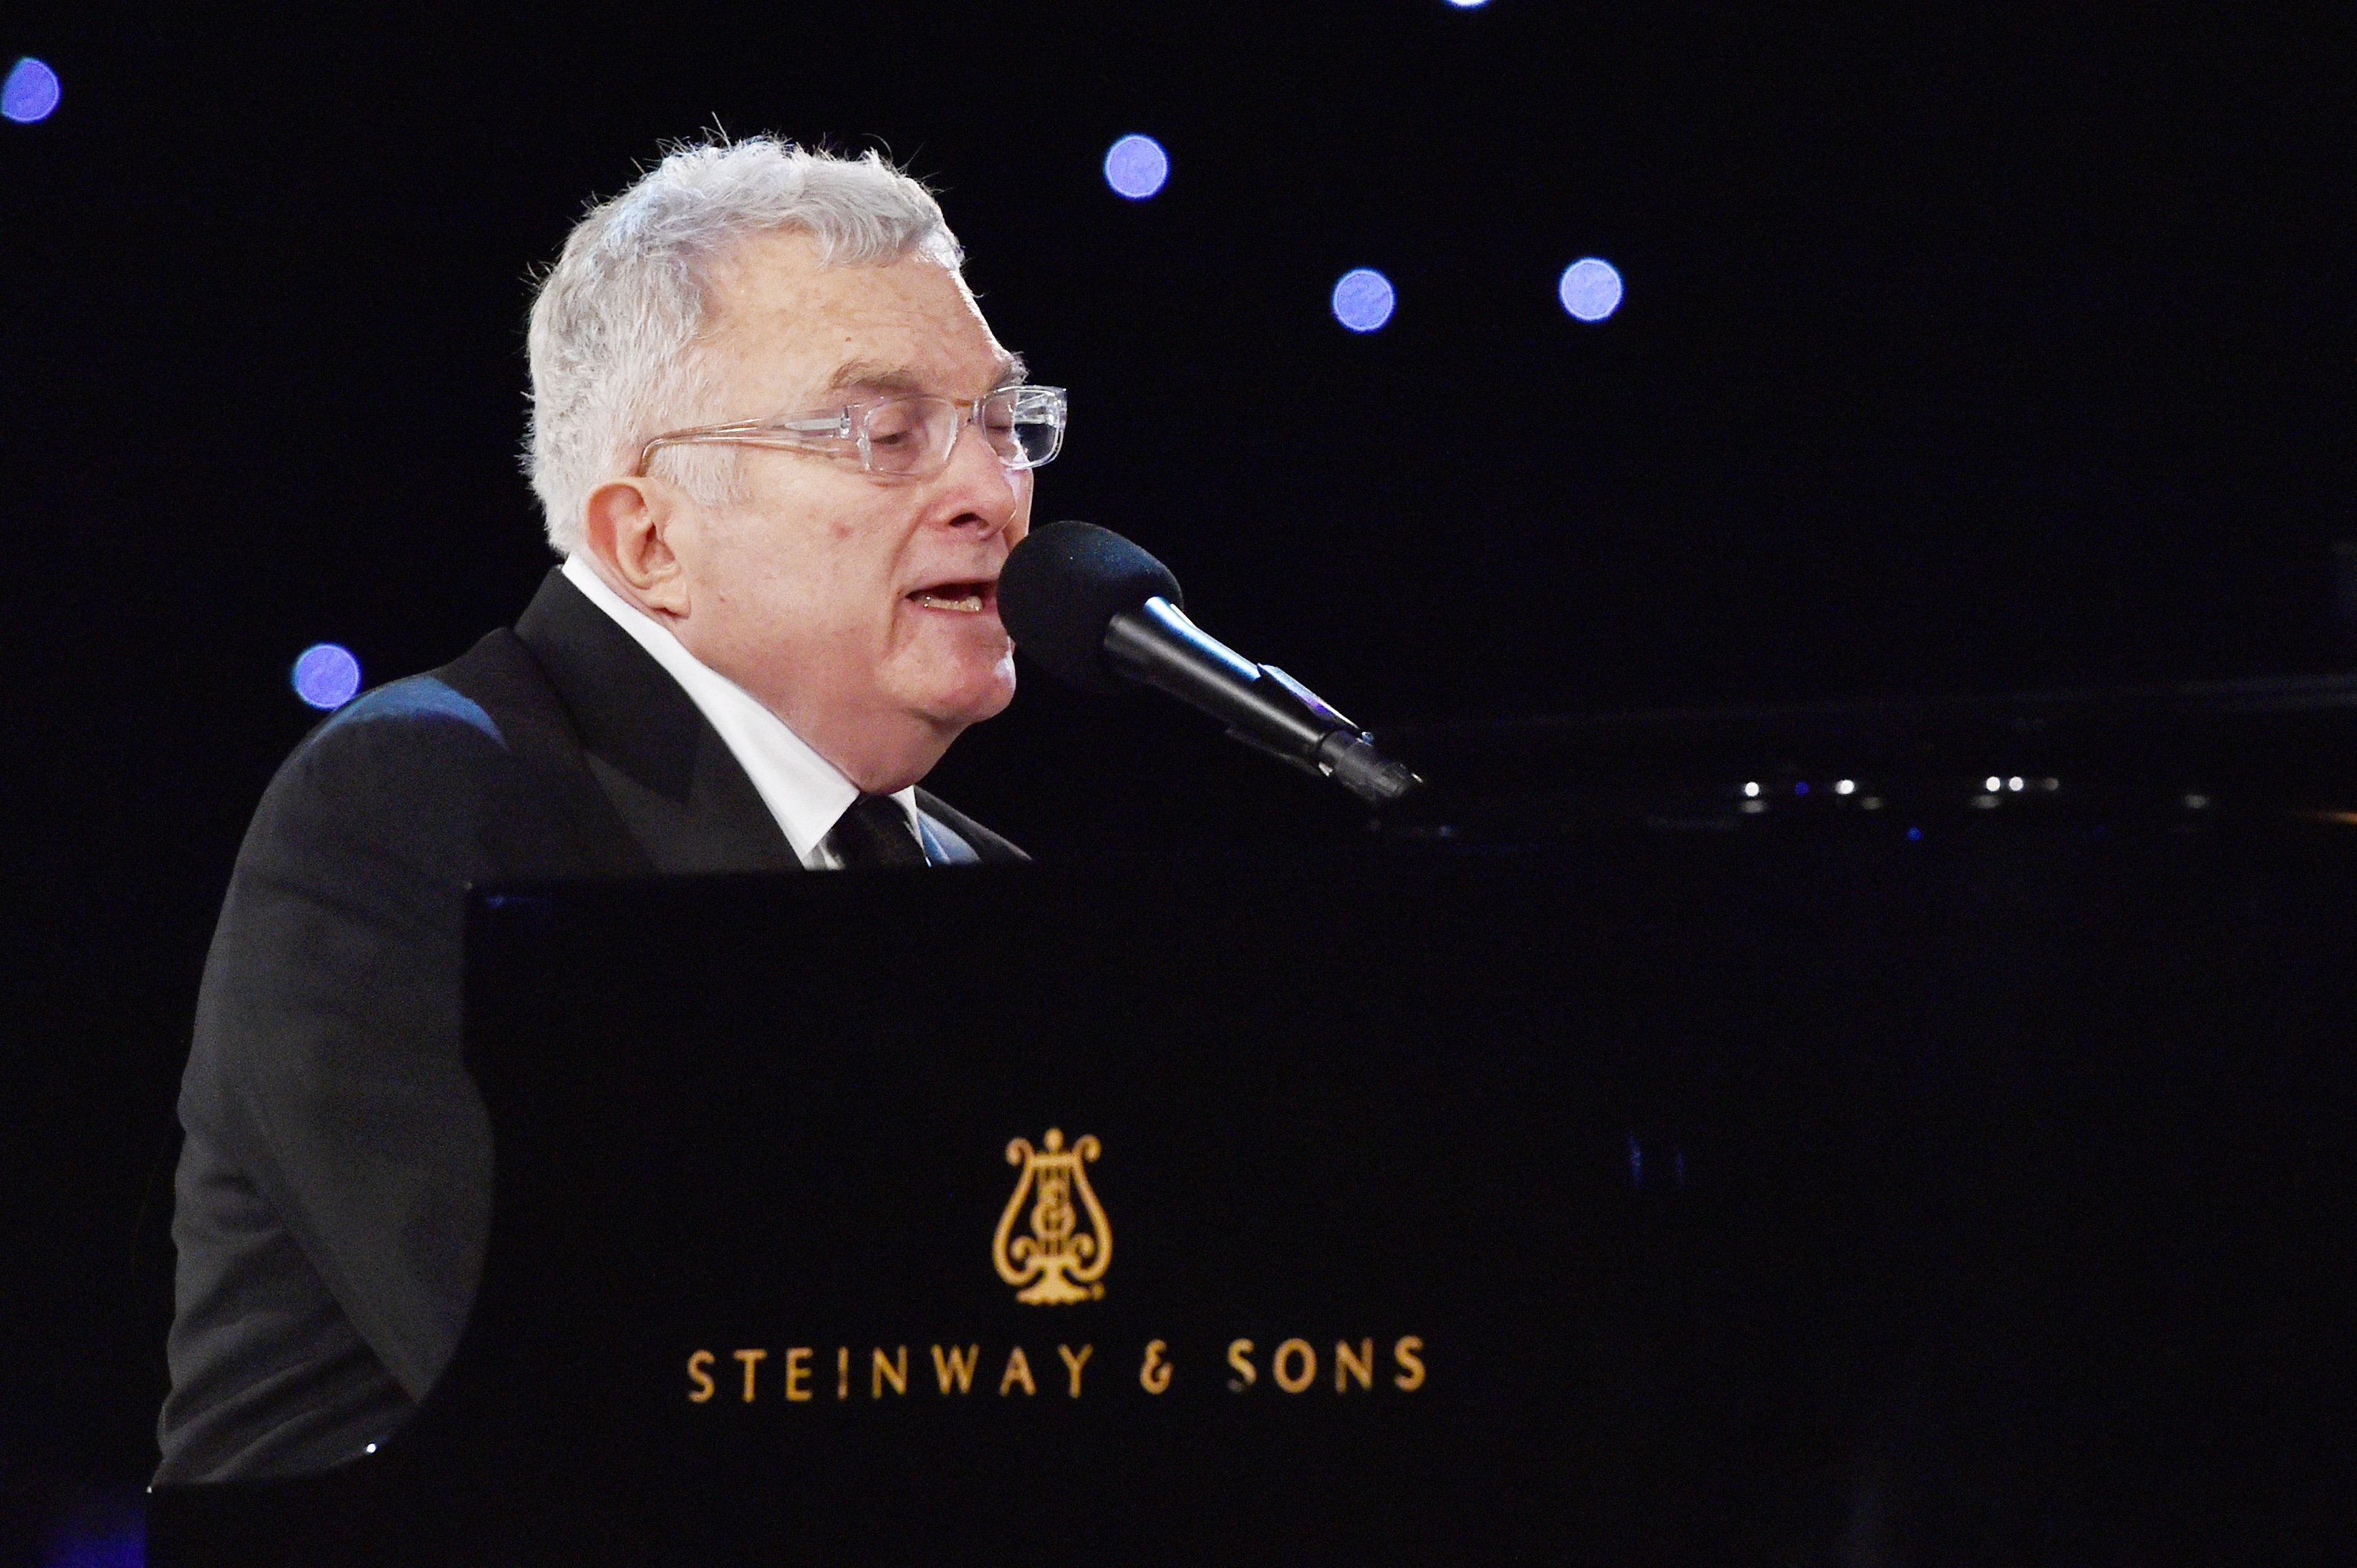 LOS ANGELES, CA - FEBRUARY 10: Musician Randy Newman performs onstage during MusiCares Person of the Year honoring Tom Petty at the Los Angeles Convention Center on February 10, 2017 in Los Angeles, California.  (Photo by Lester Cohen/WireImage)